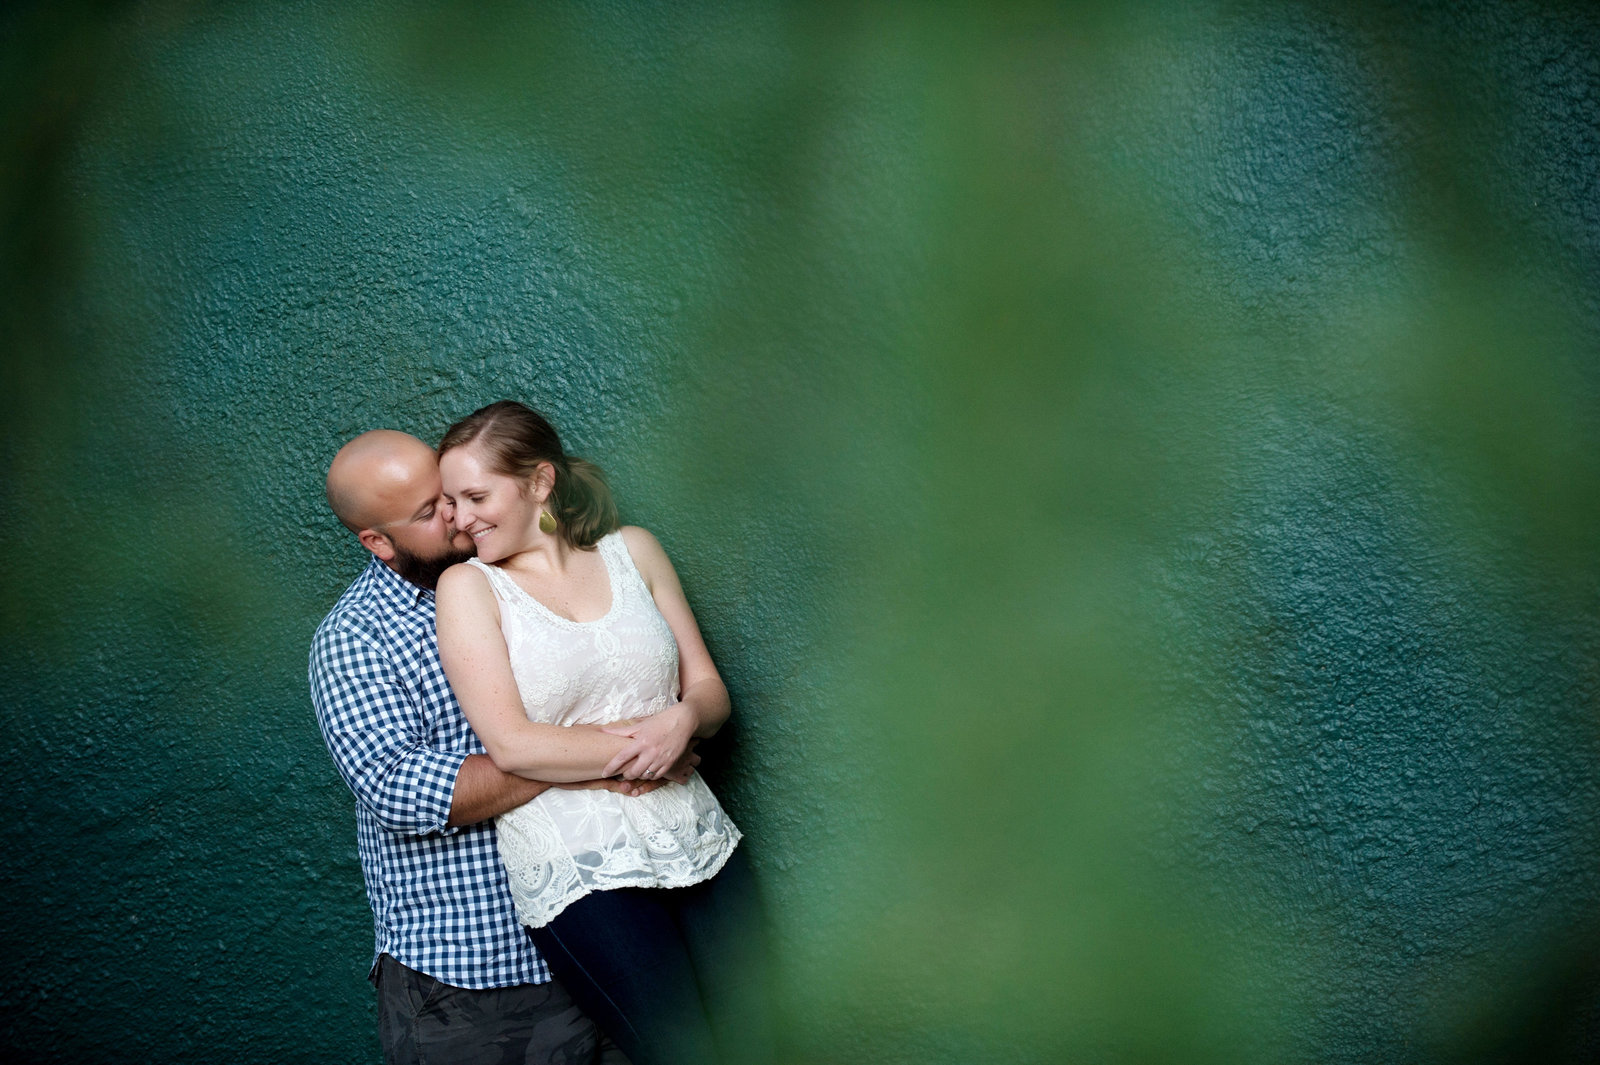 a couple embrace against a green wall with green leaves in the foreground